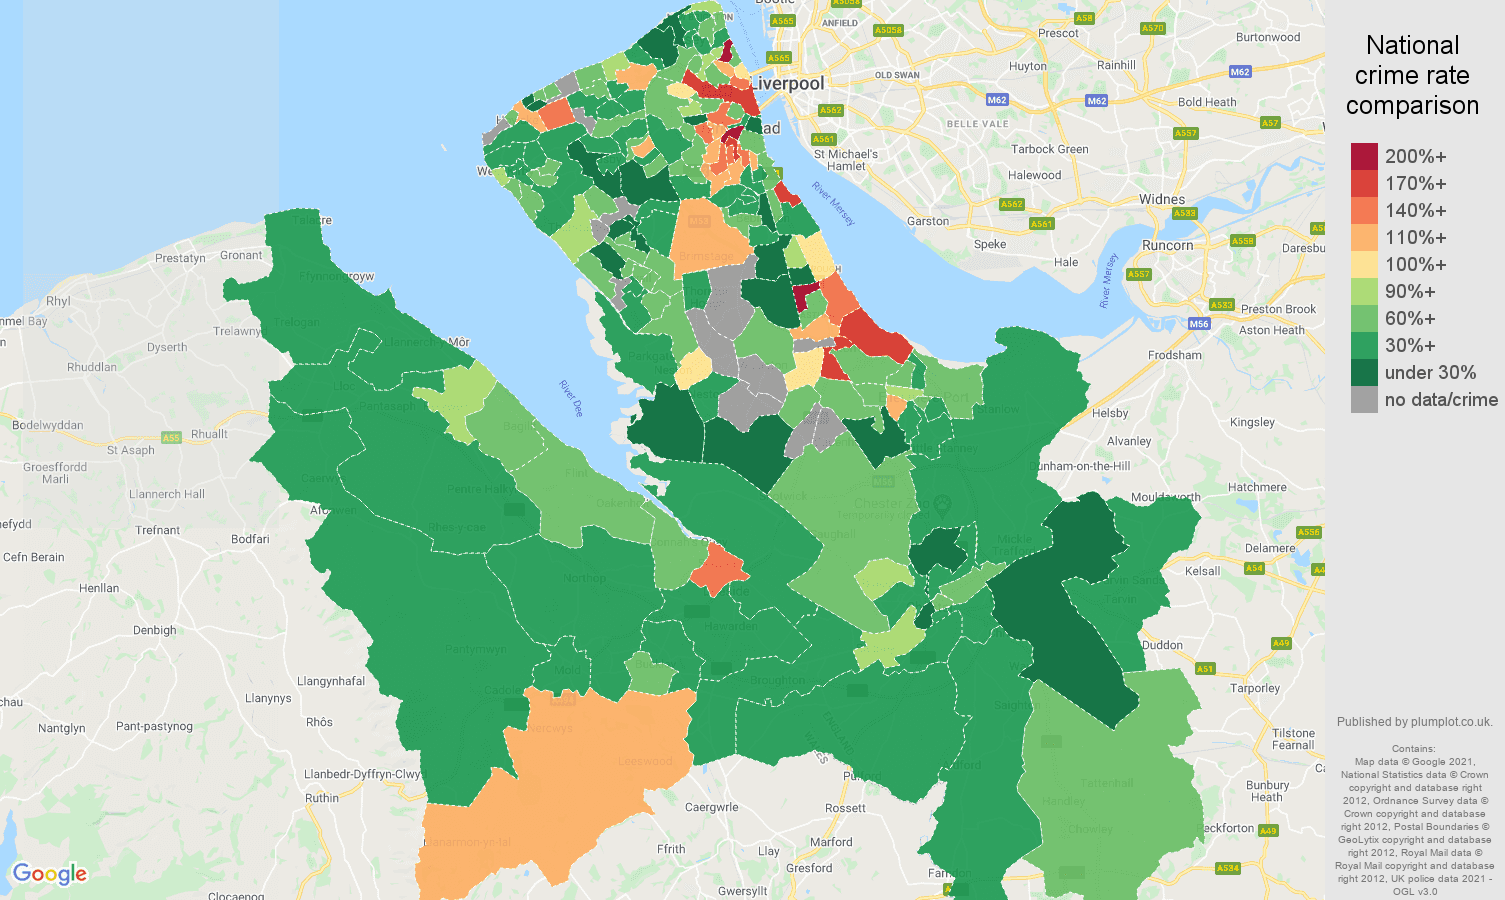 Chester burglary crime rate comparison map